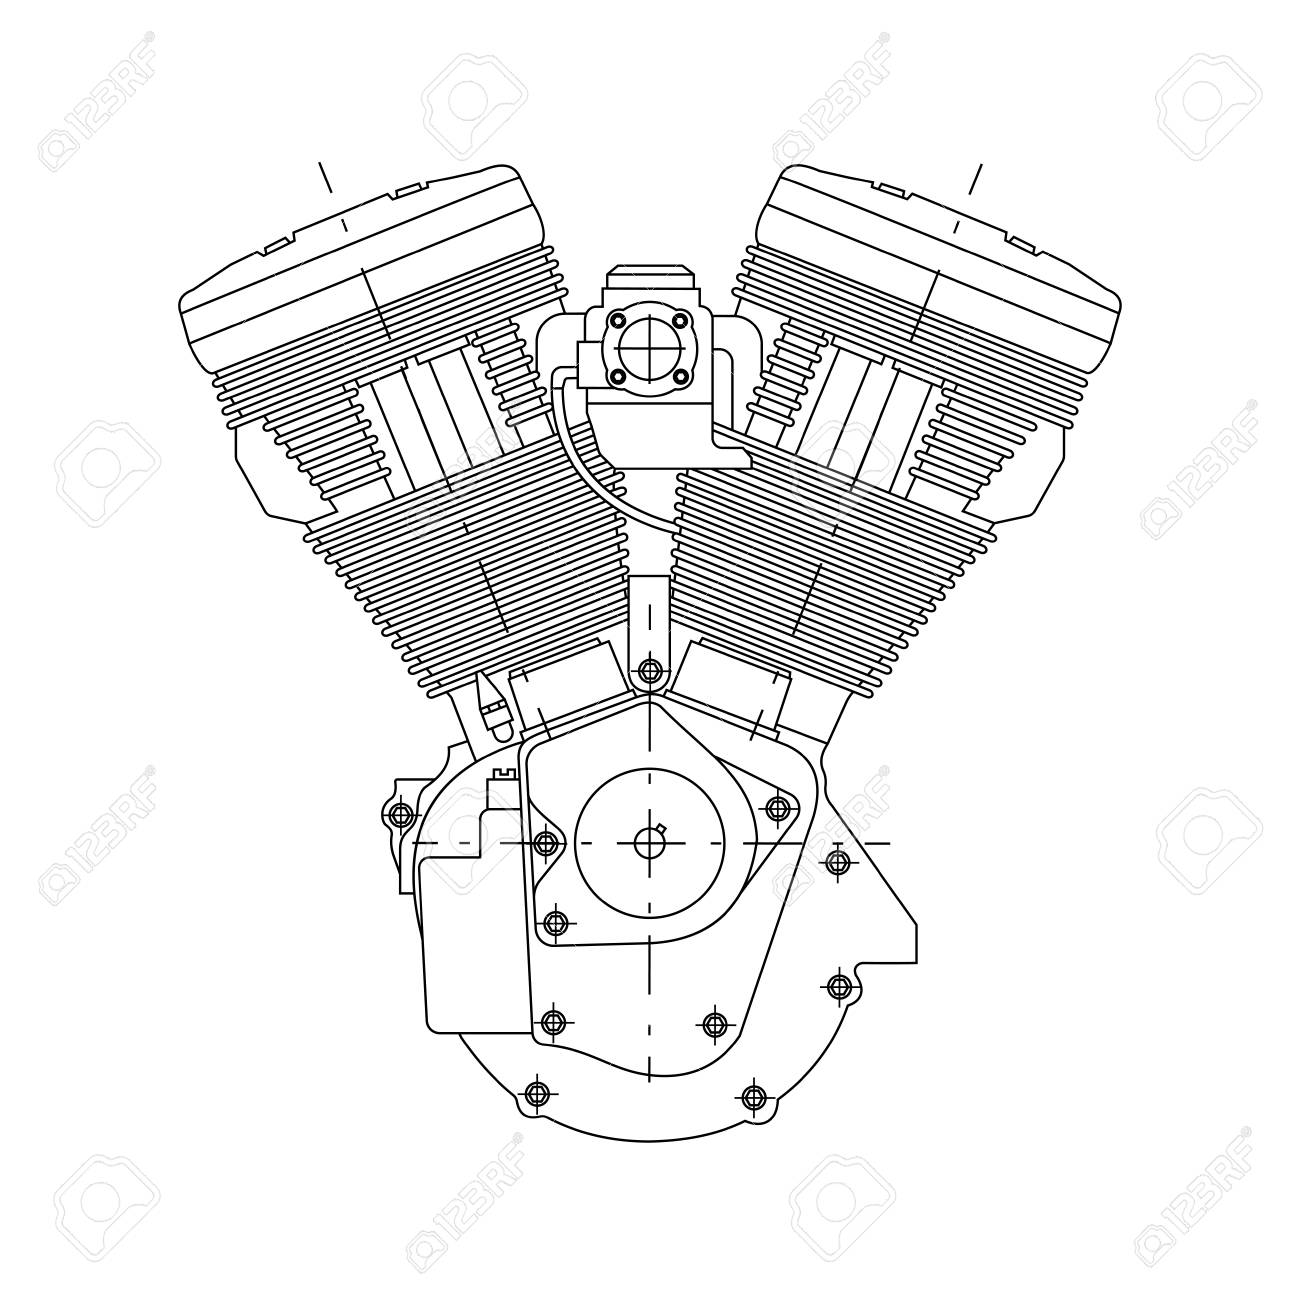 1300x1297 Technical Drawing Of The Engine Of The Motorcycle. Royalty Free